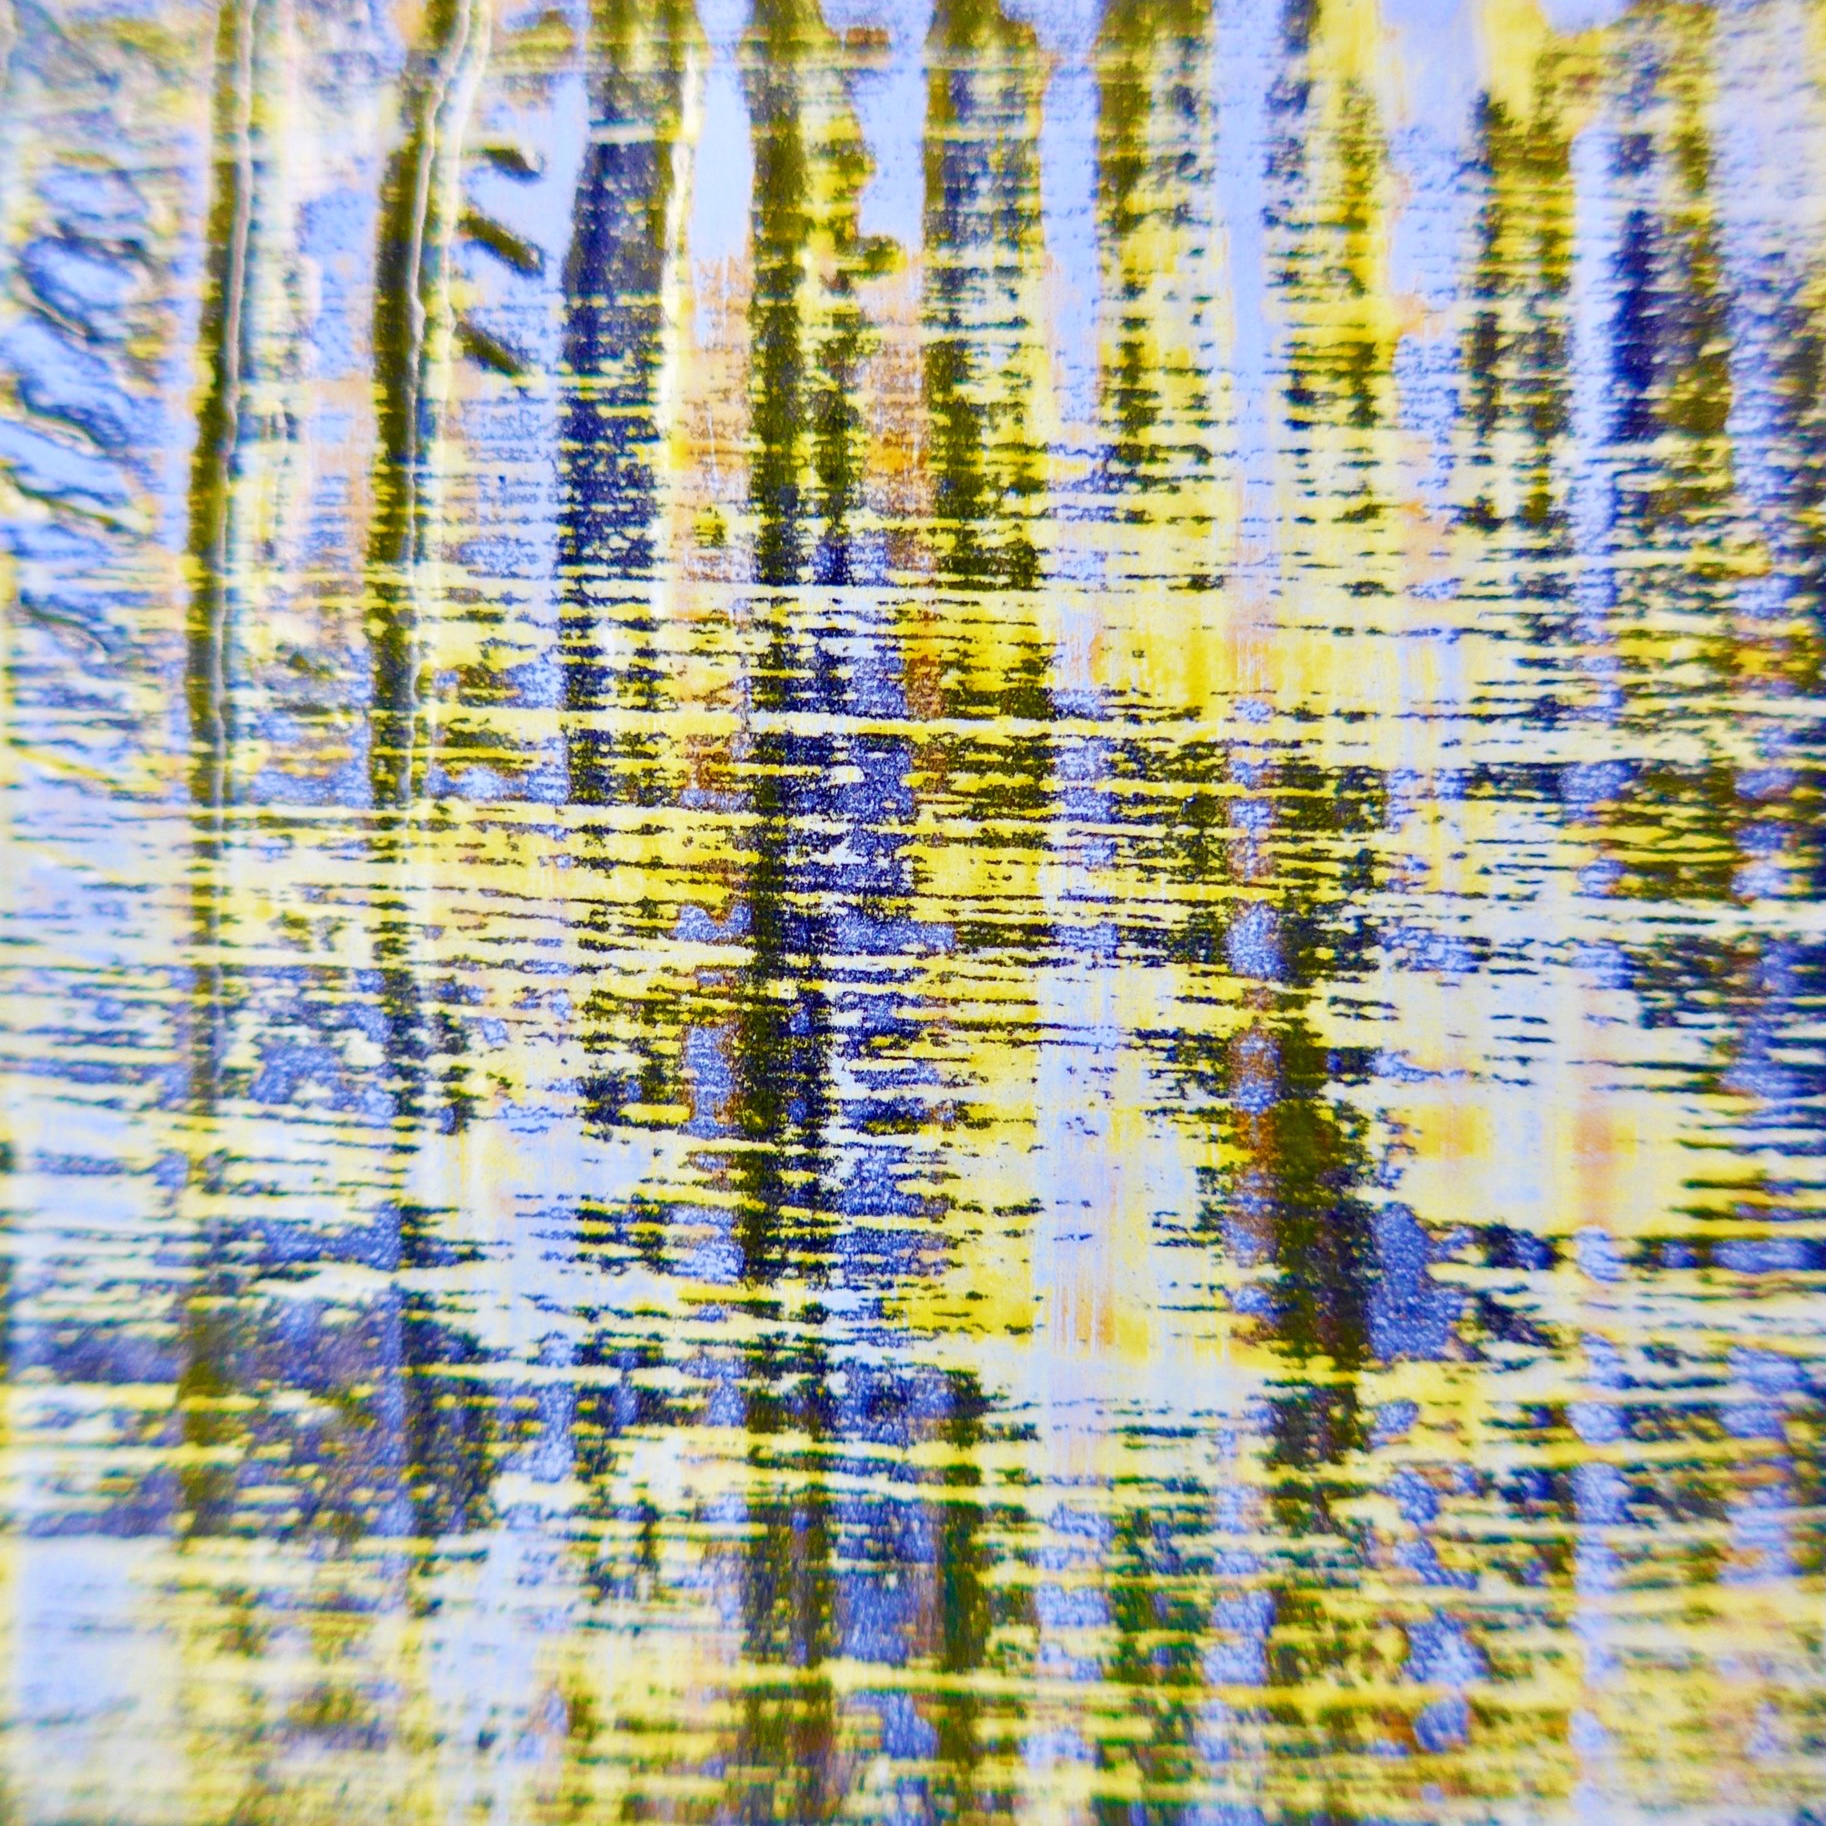 This piece is built up of layers of black and white enamels, which have been scraped and brushed through horizontally and vertically several times, with a final yellow pigment applied